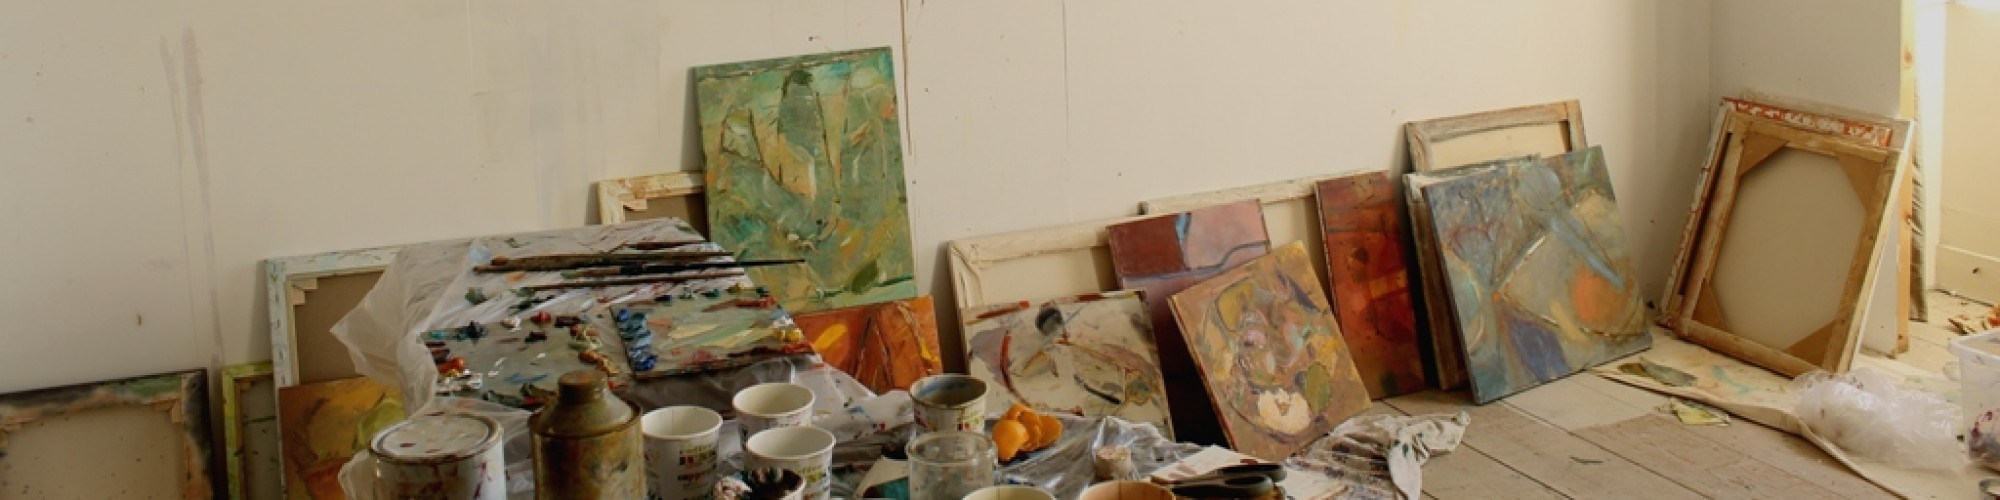 Studio Lesley-Ann O'Connell